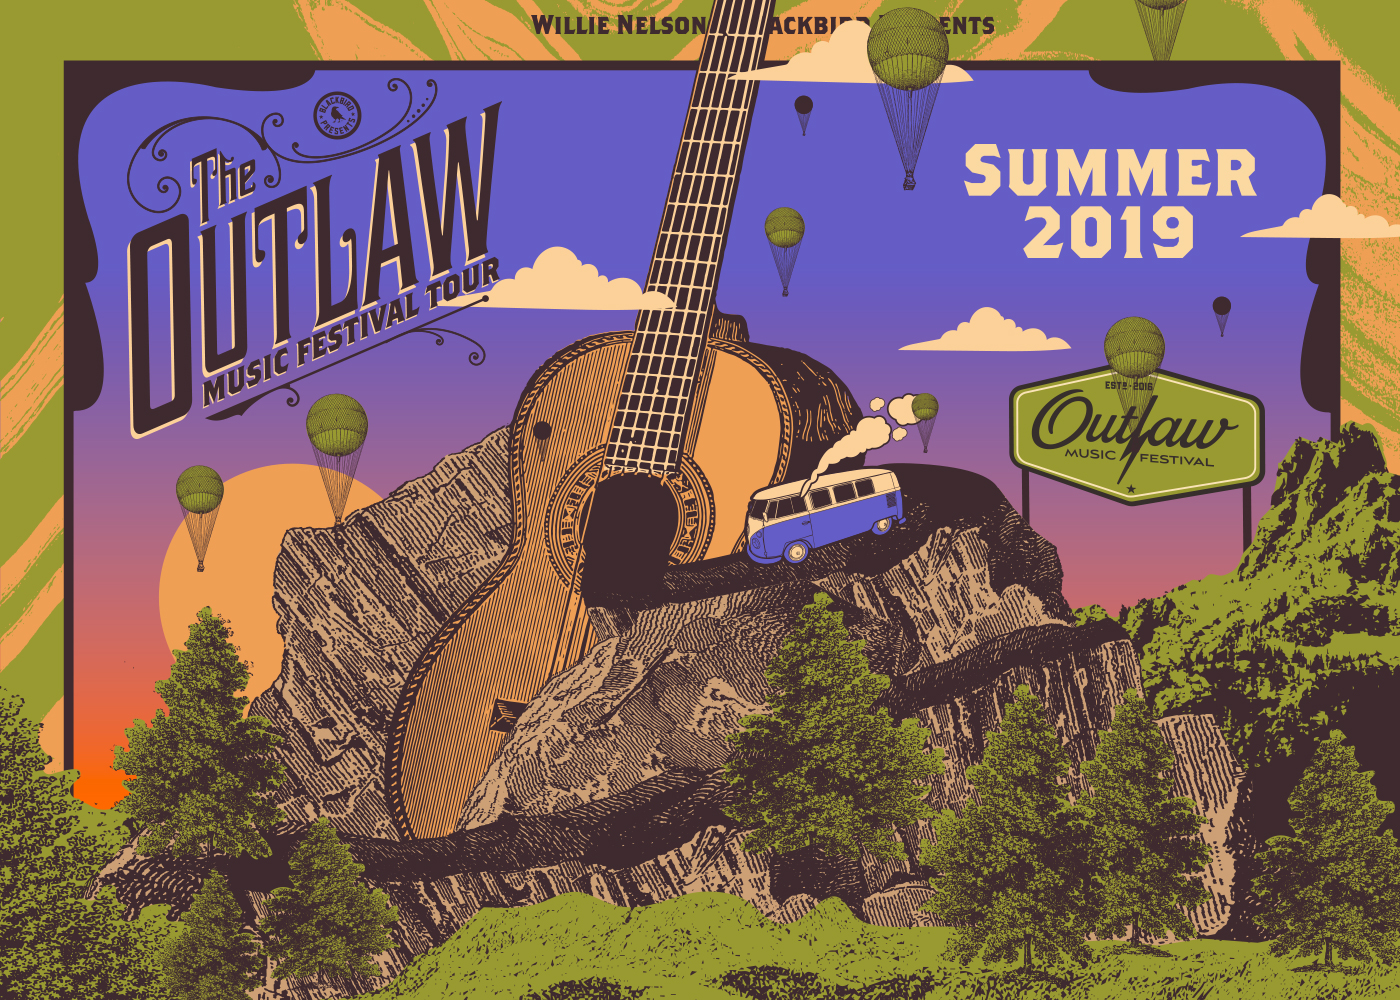 Outlaw Music Festival Tour 2019